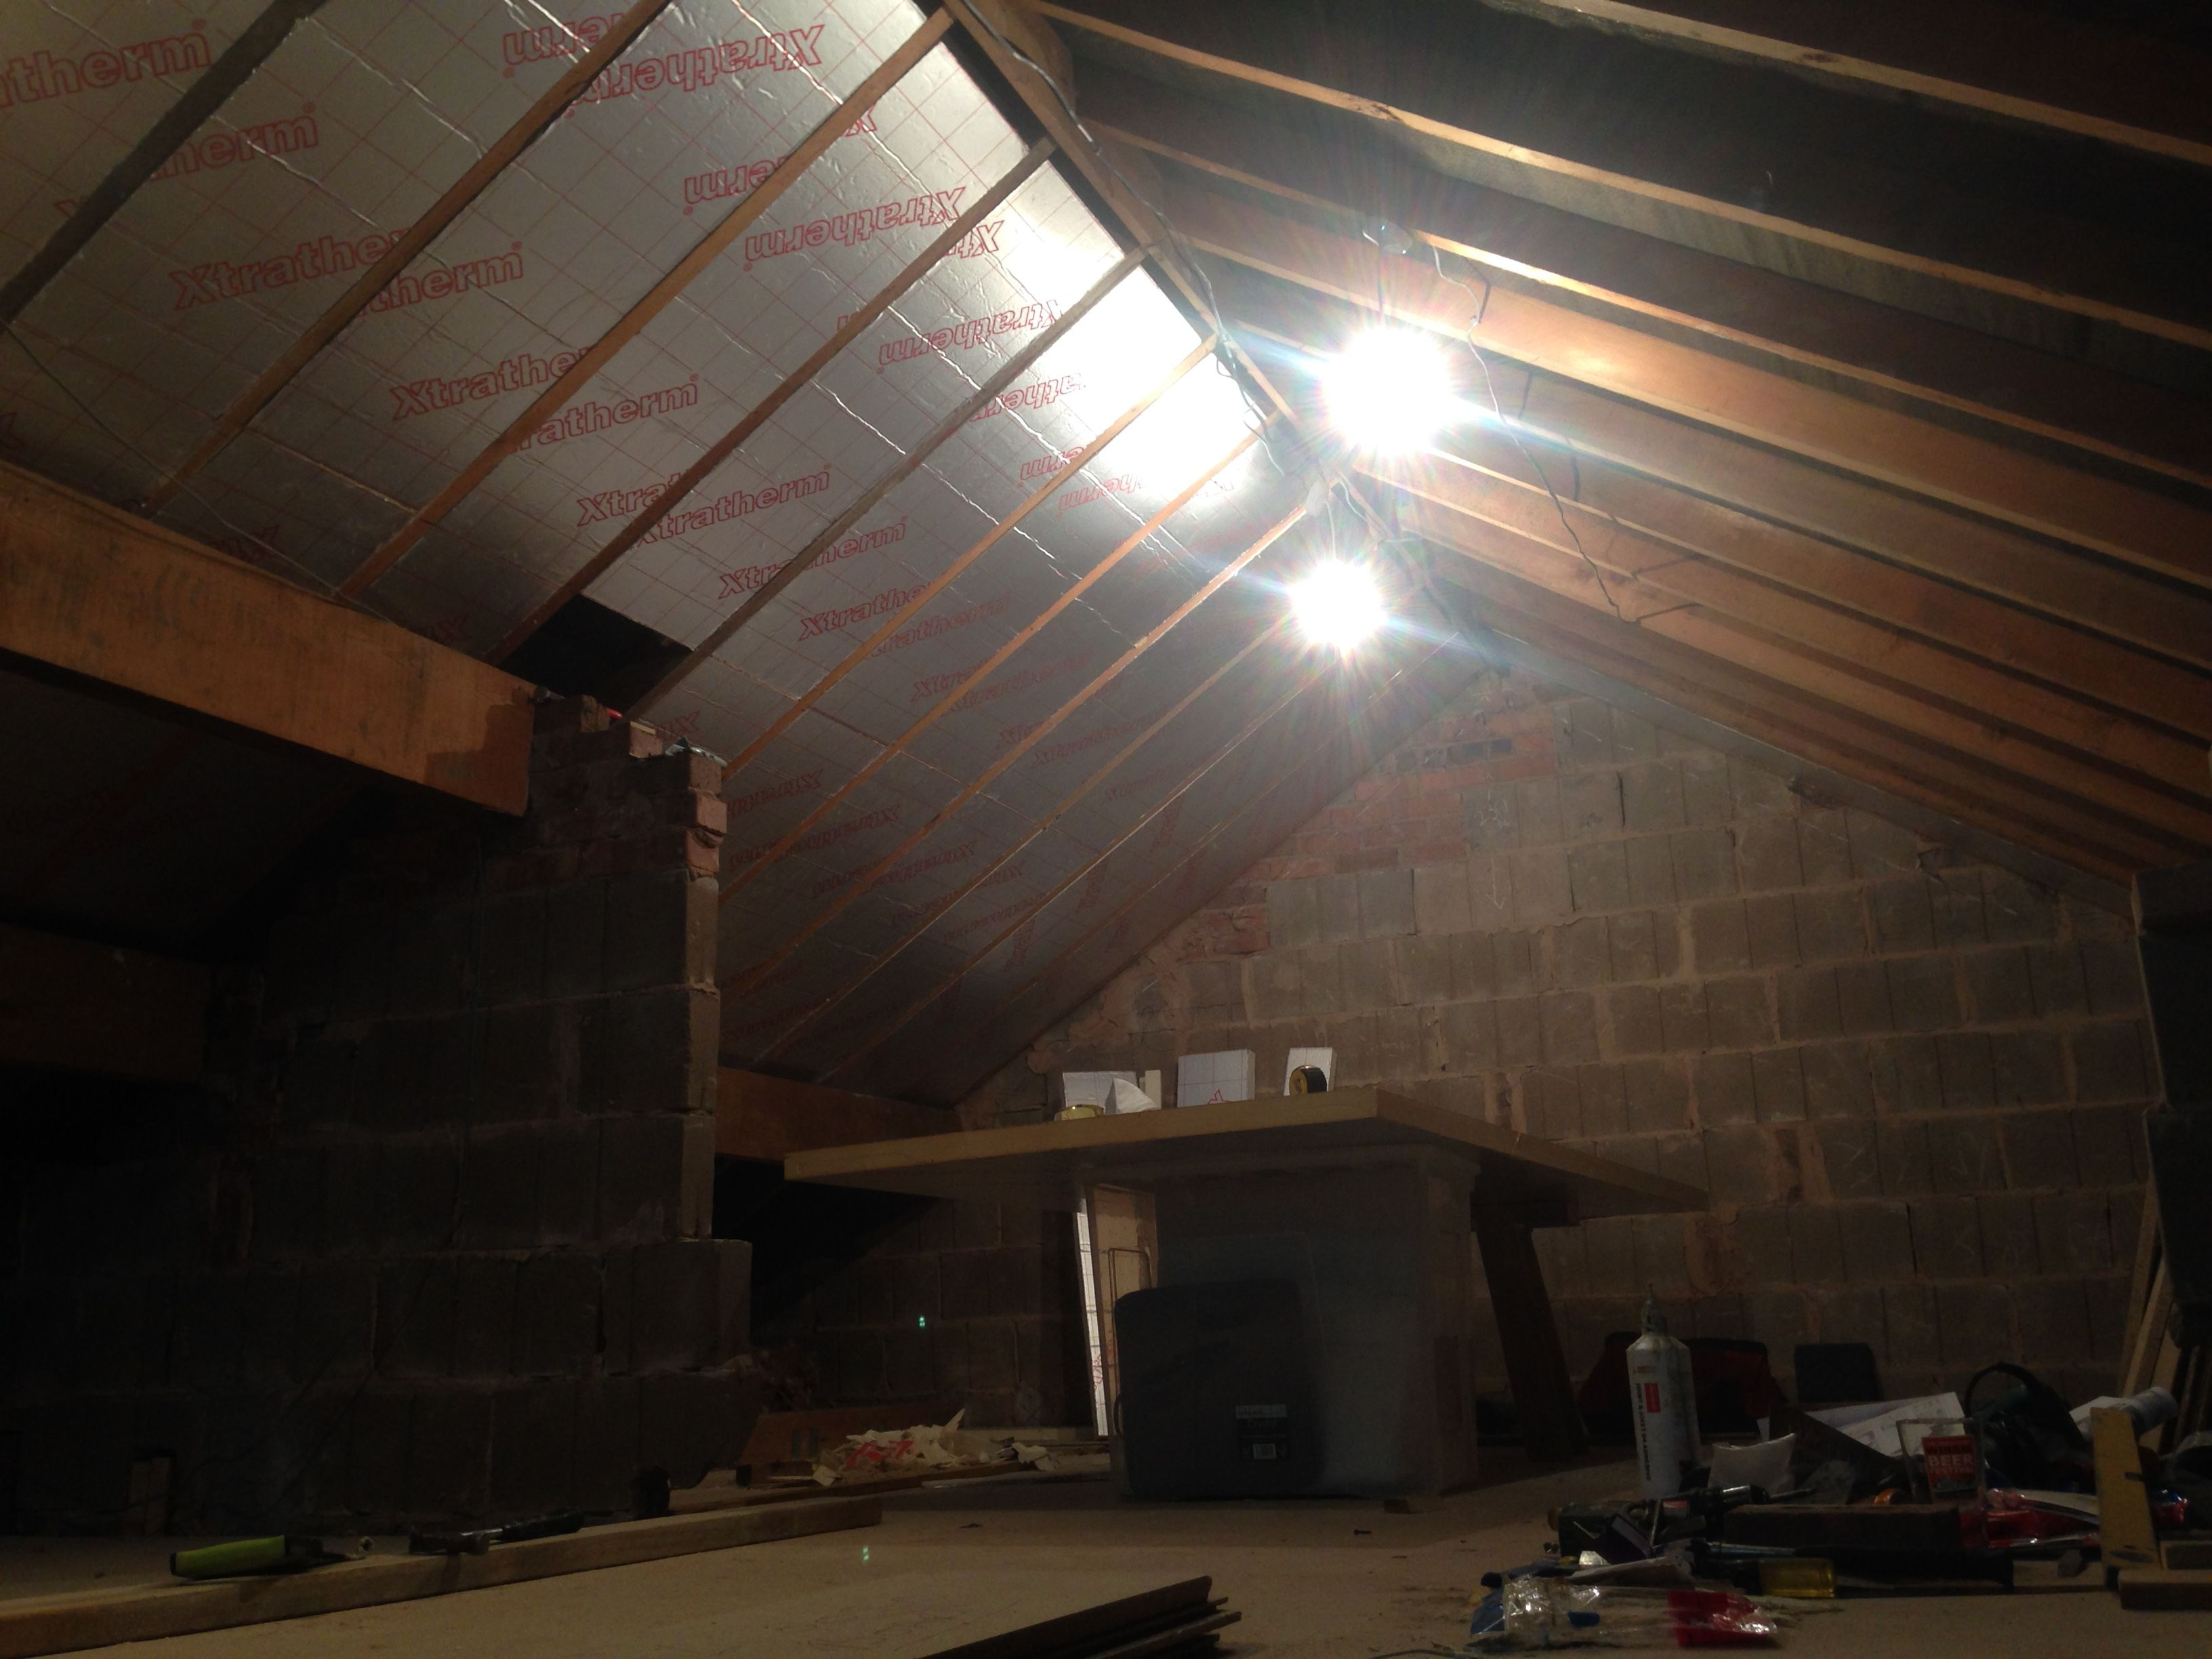 Loft conversion insulation between rafters